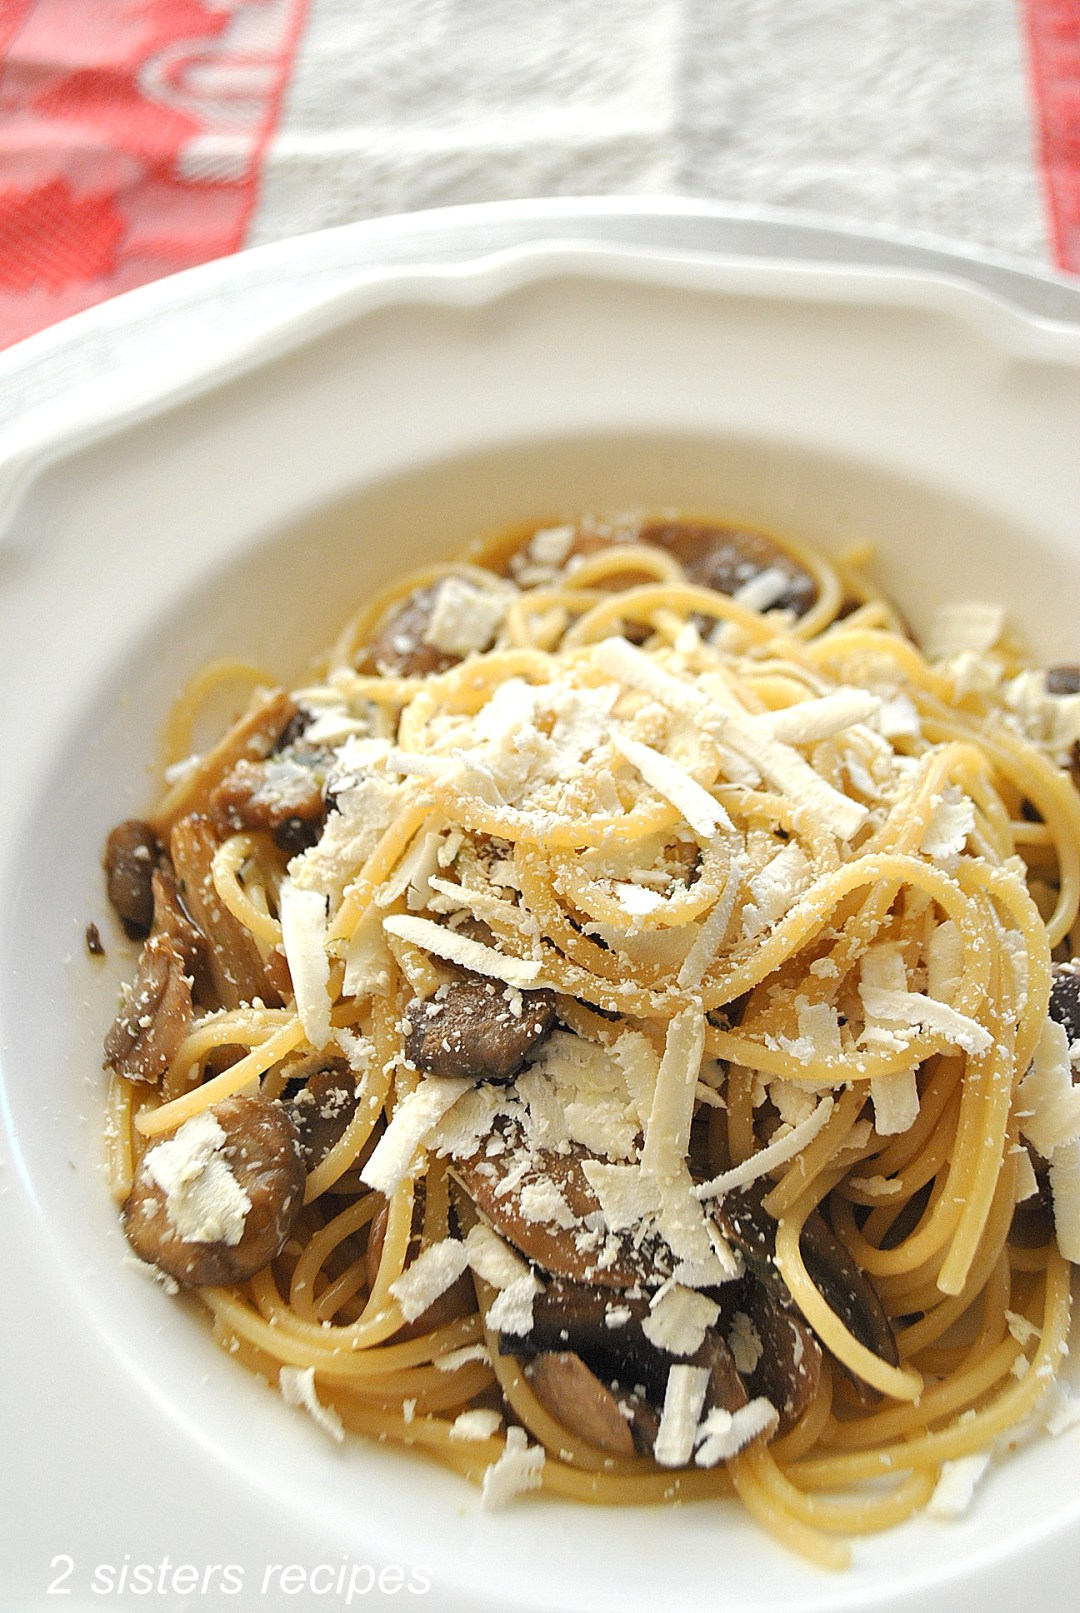 Wild Mushrooms with Cognac and Truffle Oil by 2sistersrecipes..com